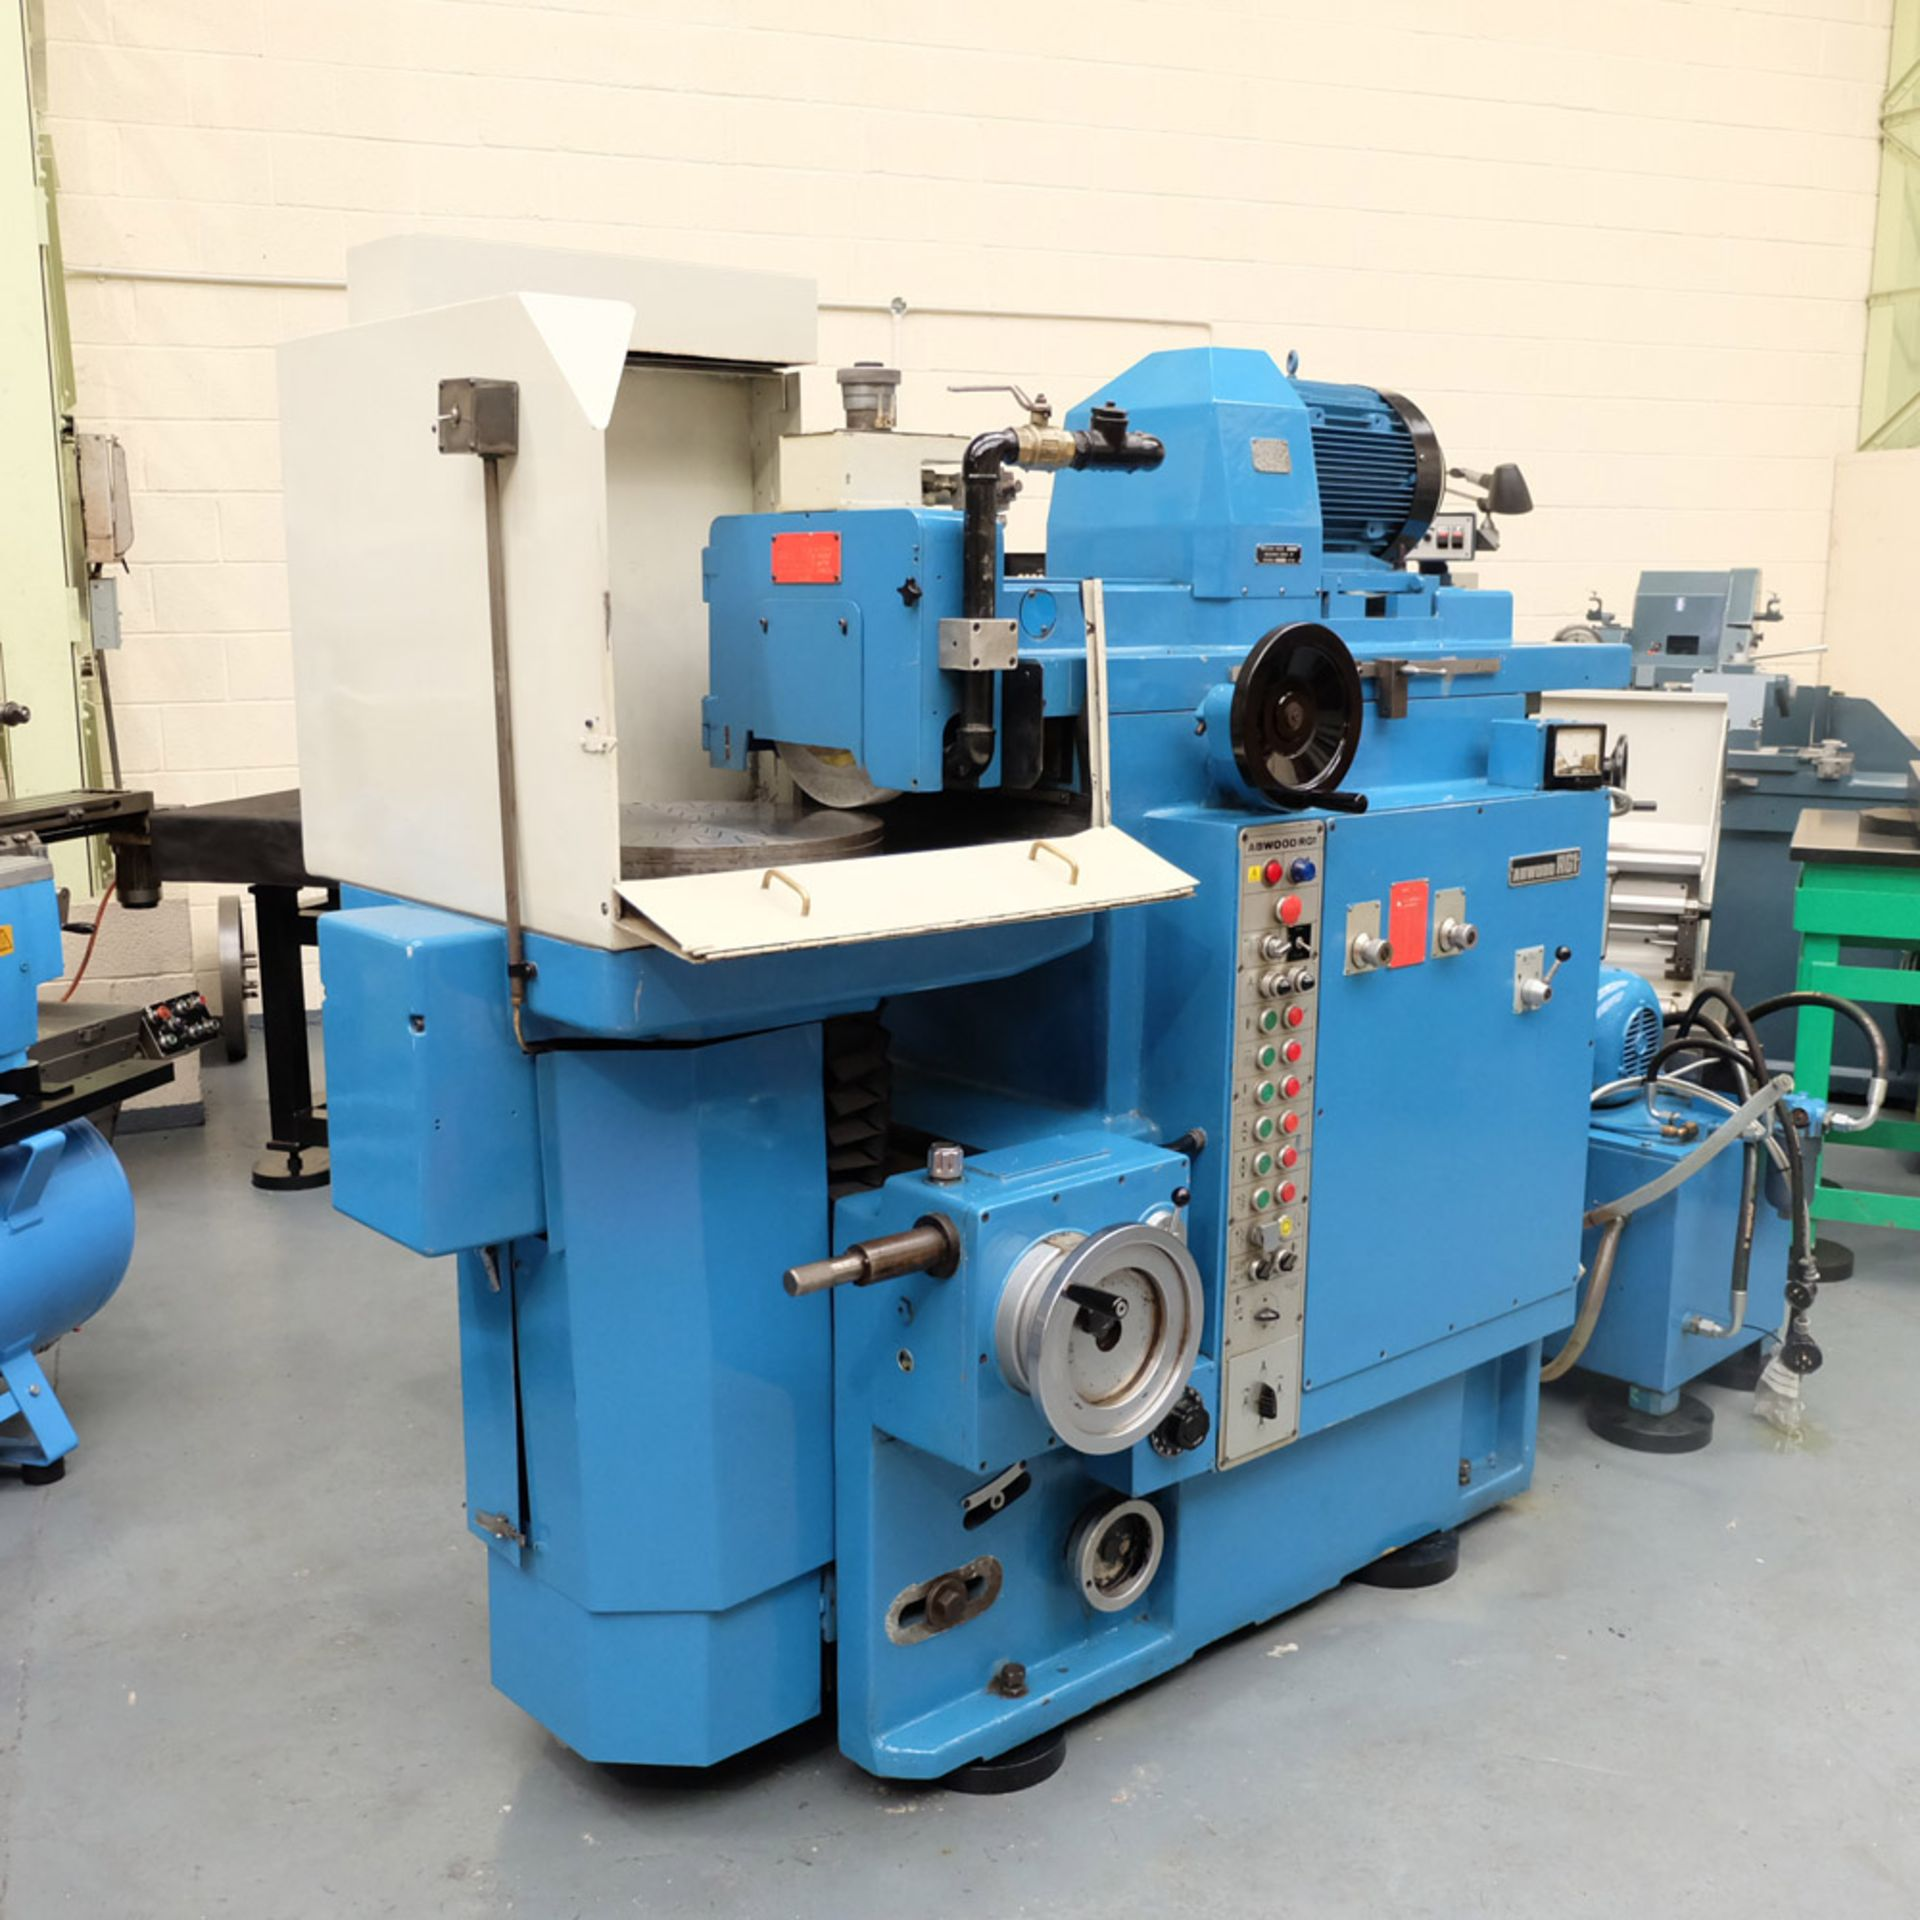 Abwood Type RG1 Tool Room Ring Grinder. Table Size 500mm. Magnetic Chuck 500mm.